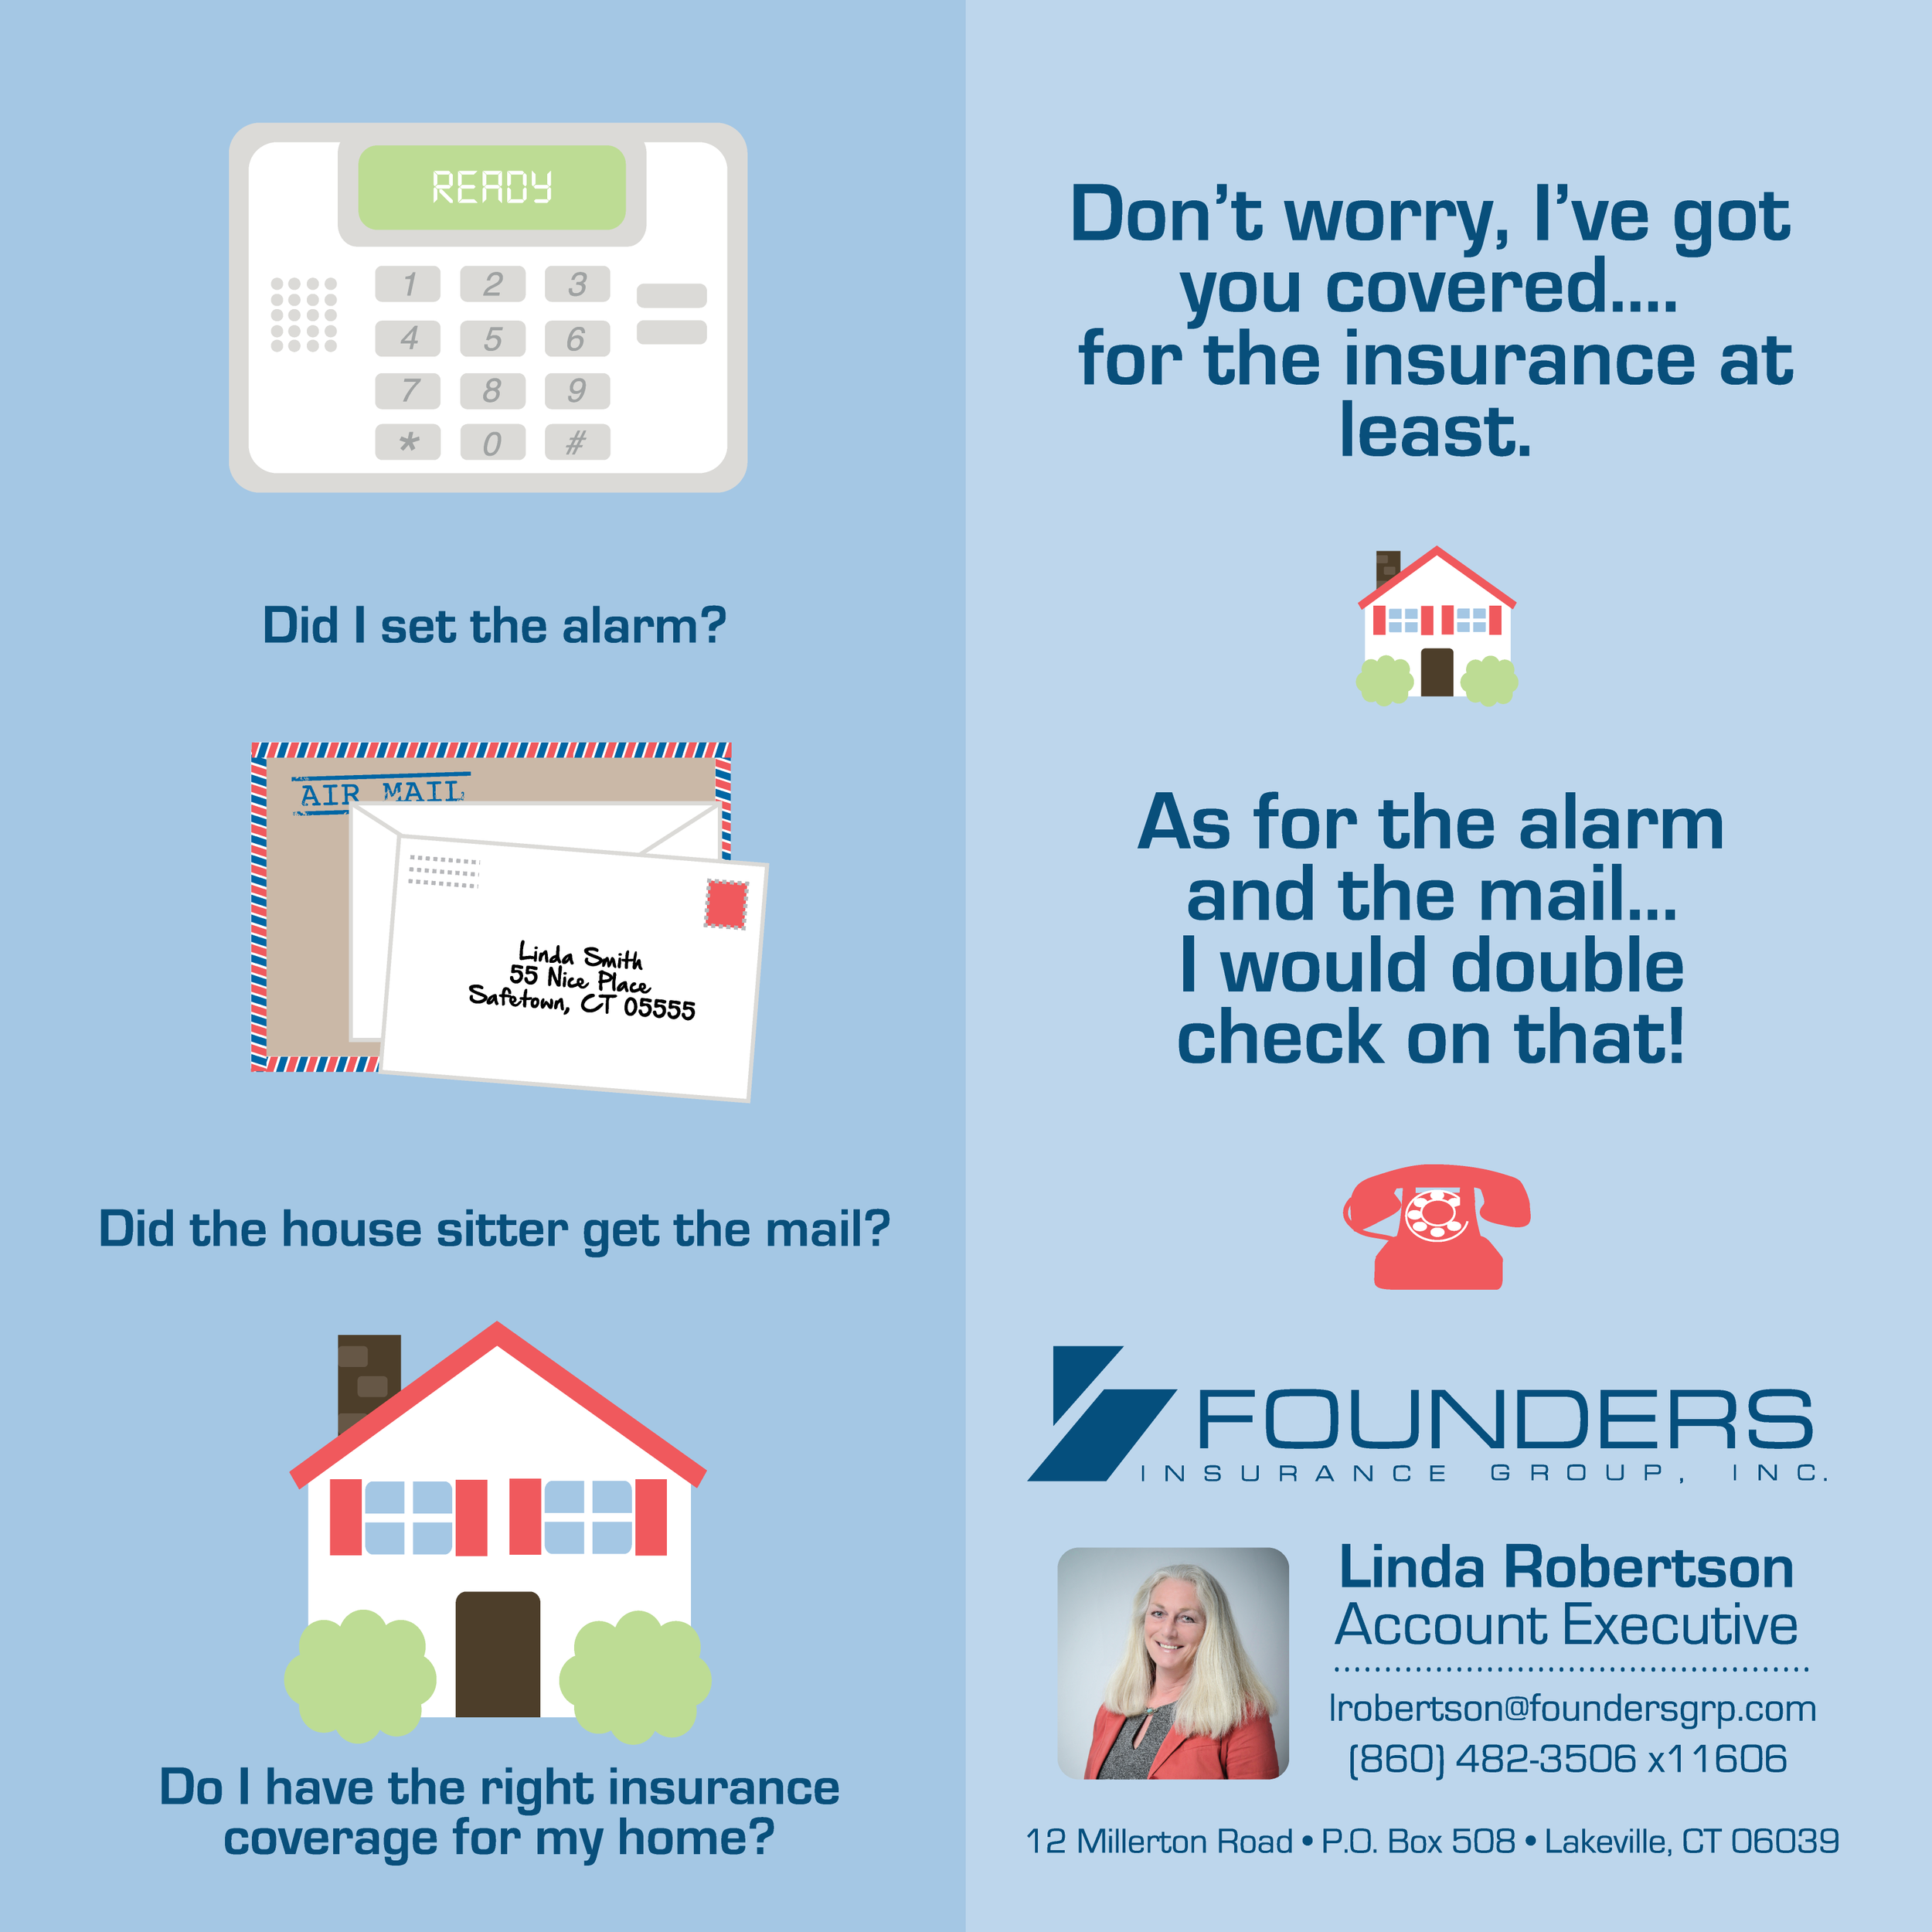 Founders Mailer 3 Inside FIXED-01-01.png